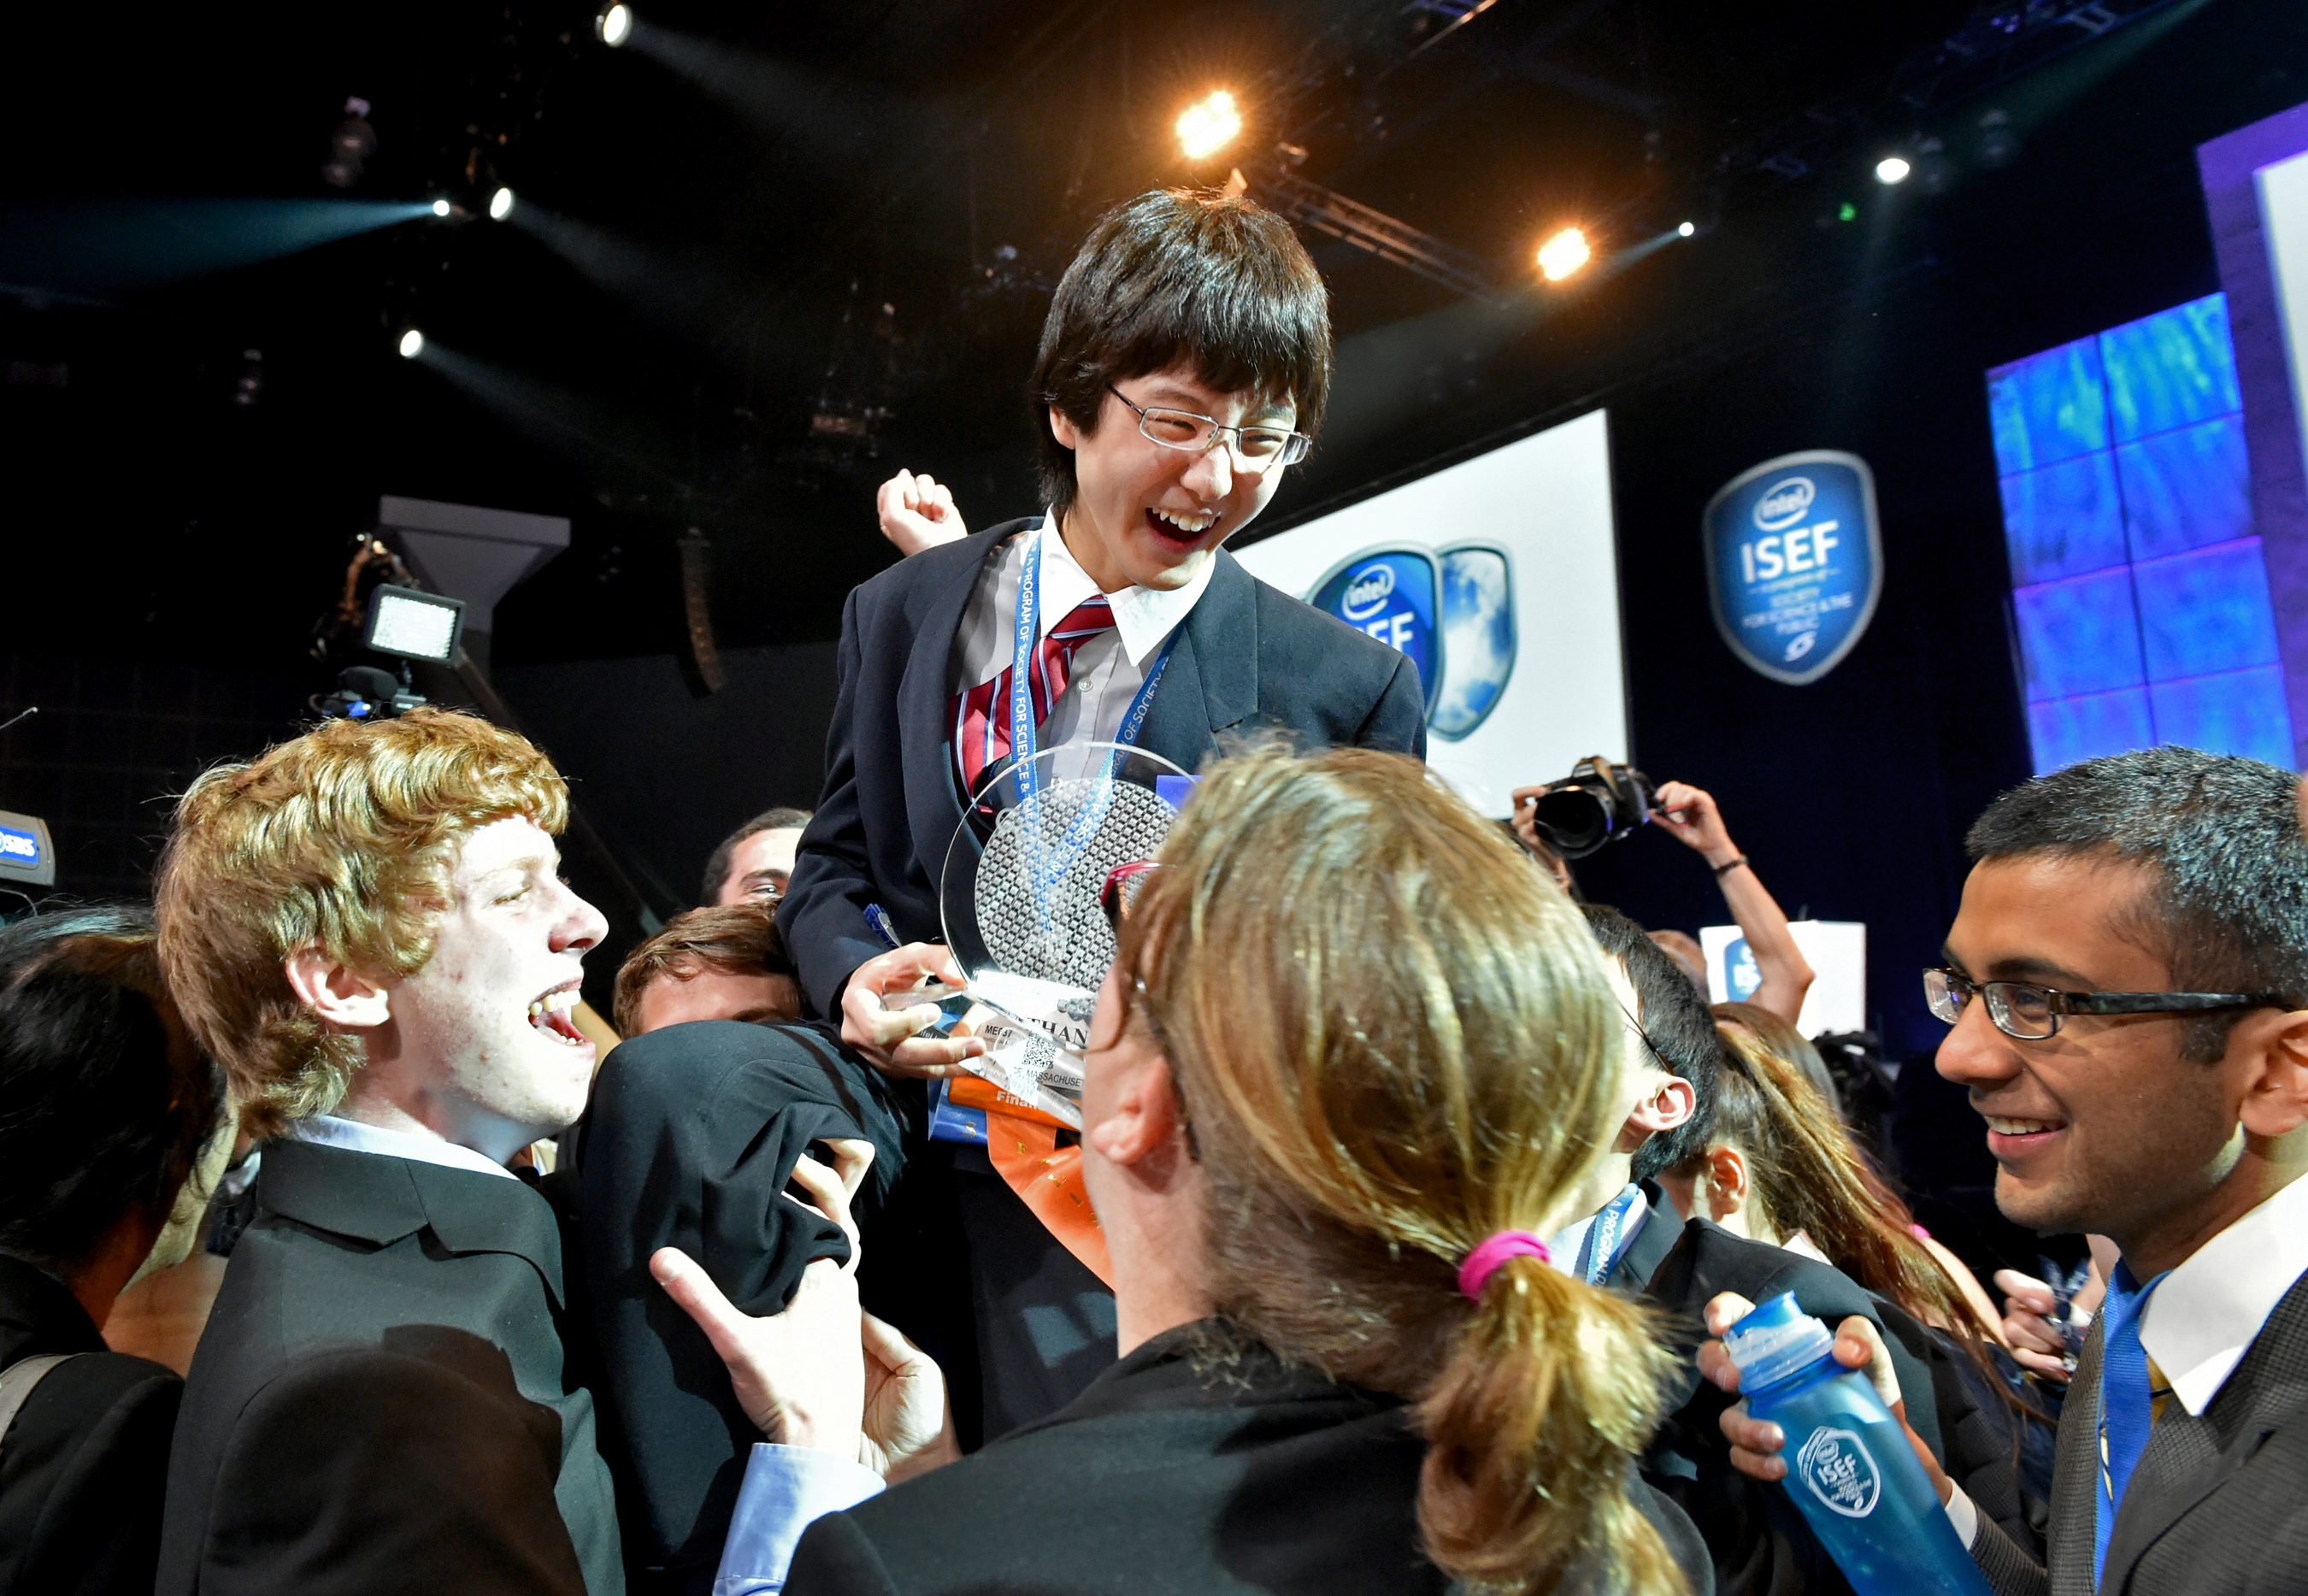 Nathan Han, 15, of Boston is celebrated by his fellow finalists for his first place win at the Intel International Science and Engineering Fair, the world's largest high school science research competition. More than 1,700 high schoolers from 70 countries, regions and territories competed for more than US$5 million in awards this week. PHOTO CREDIT: Intel/Chris Ayers.